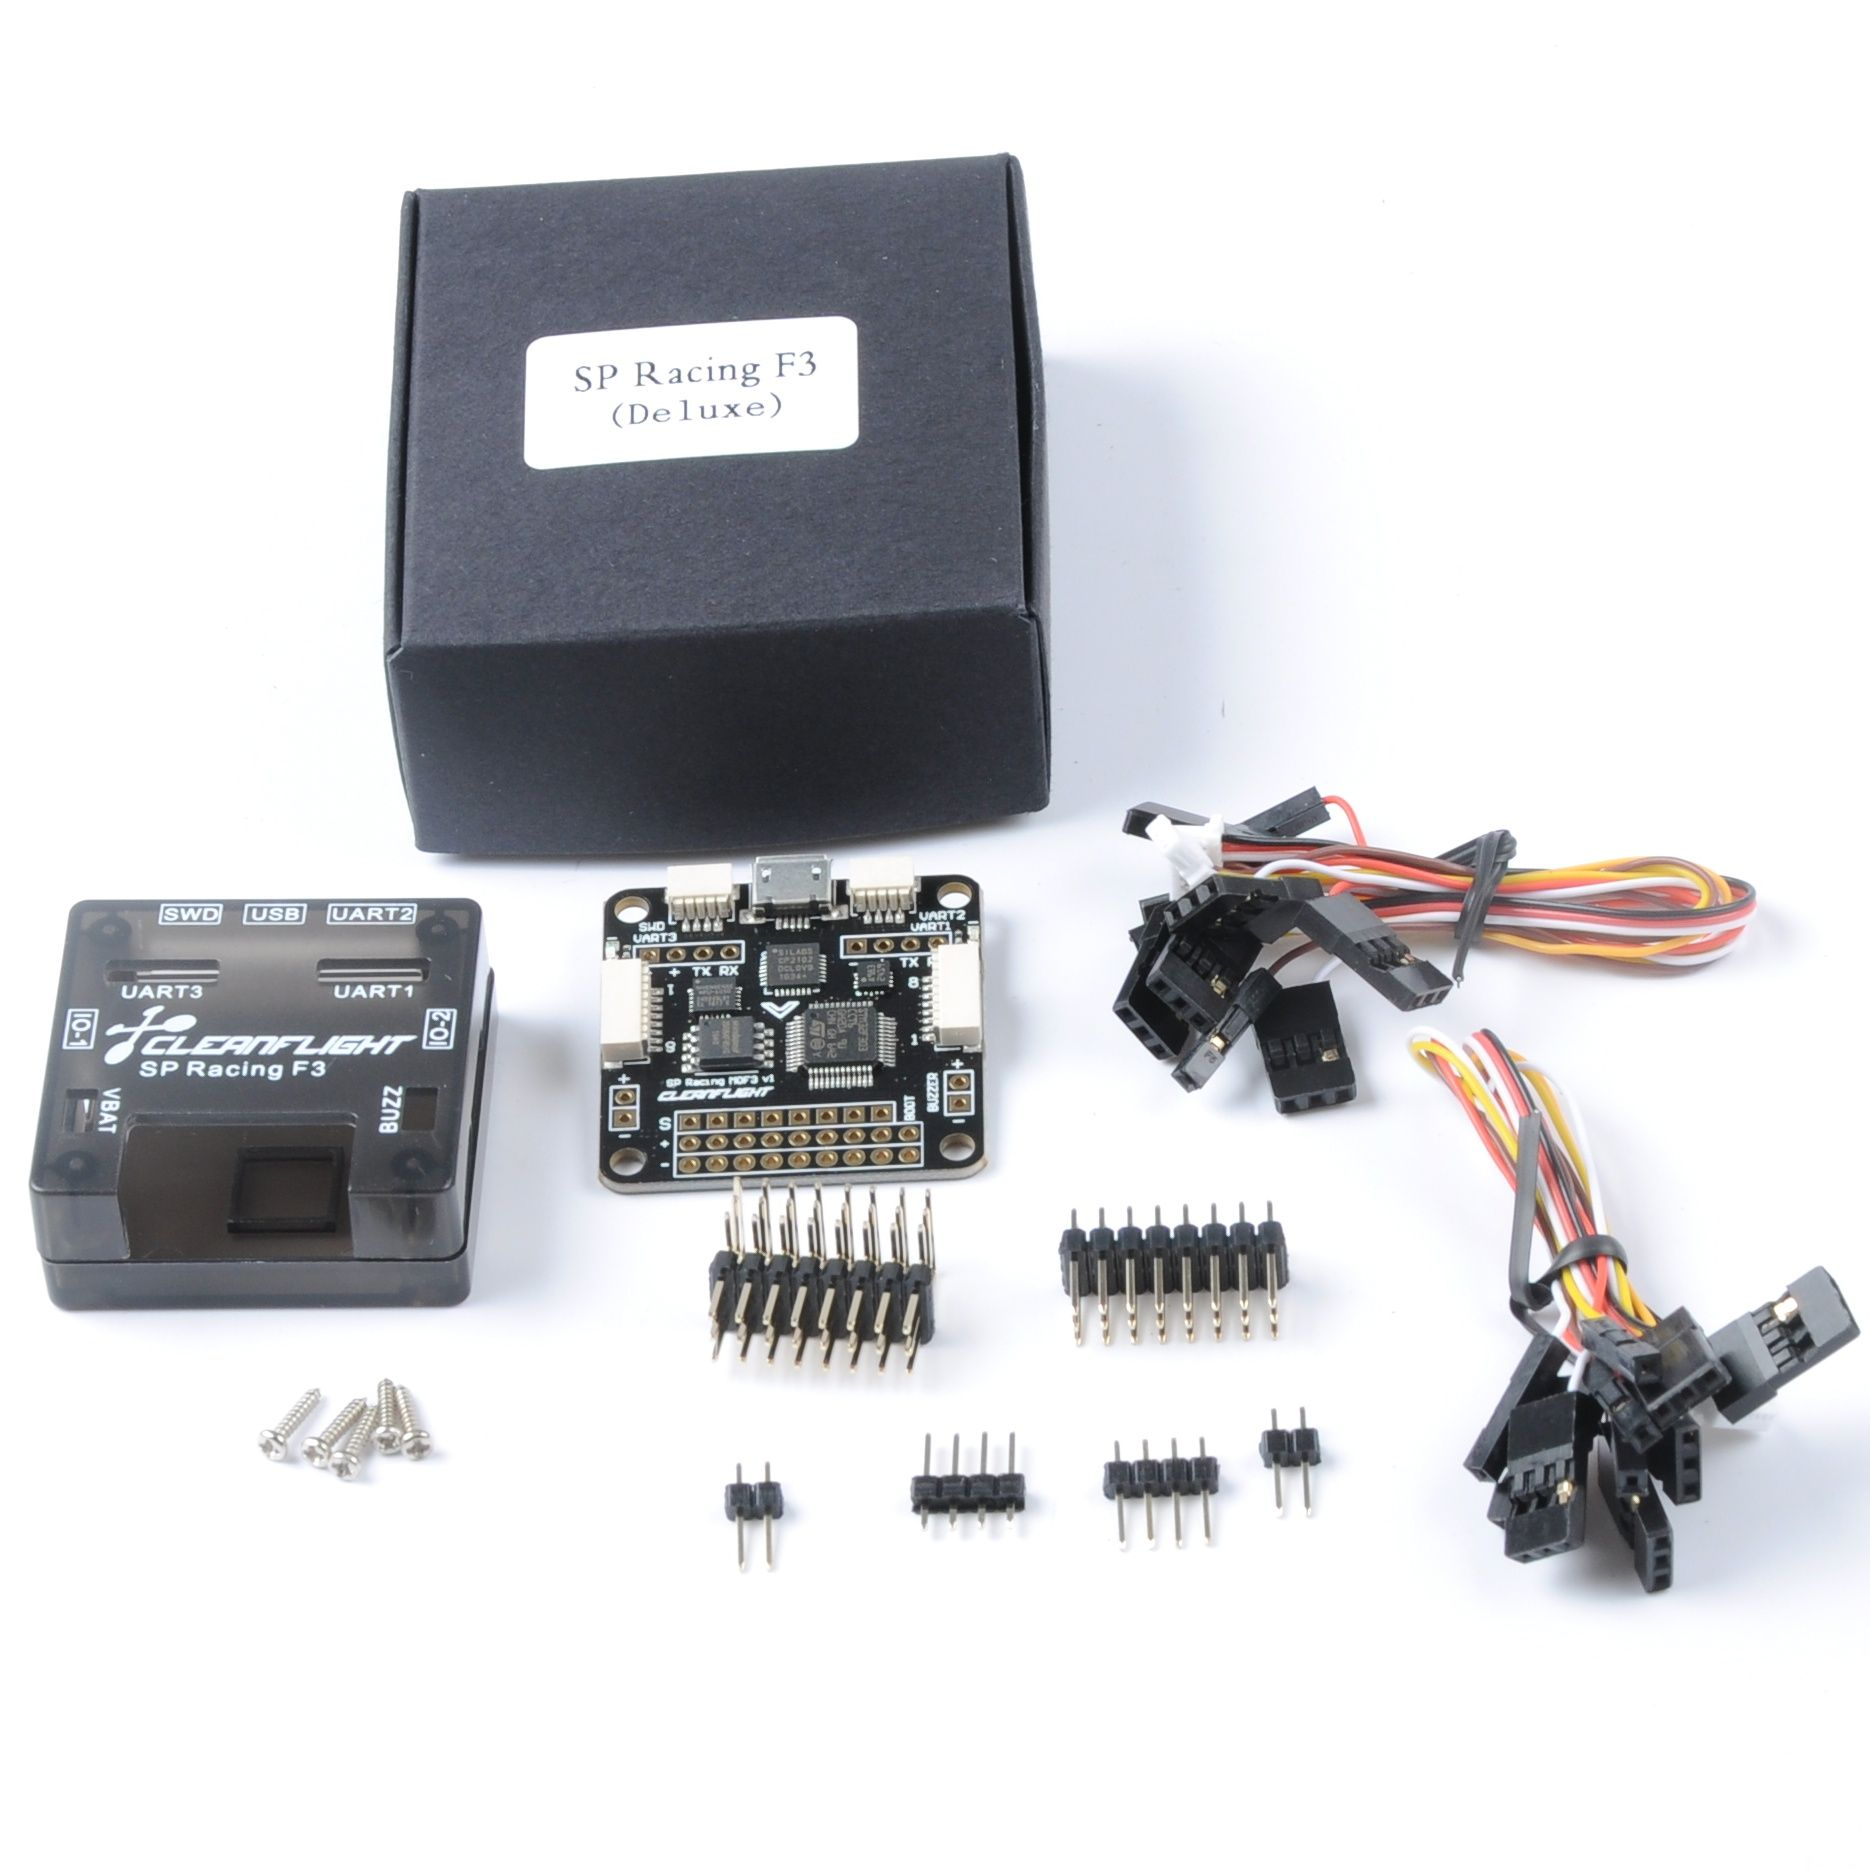 sp racing f3 flight controller deluxe for quadcopter drone multicopter mpu9250 gyro acceleration are integrated electronic compass sensors  [ 1870 x 1870 Pixel ]